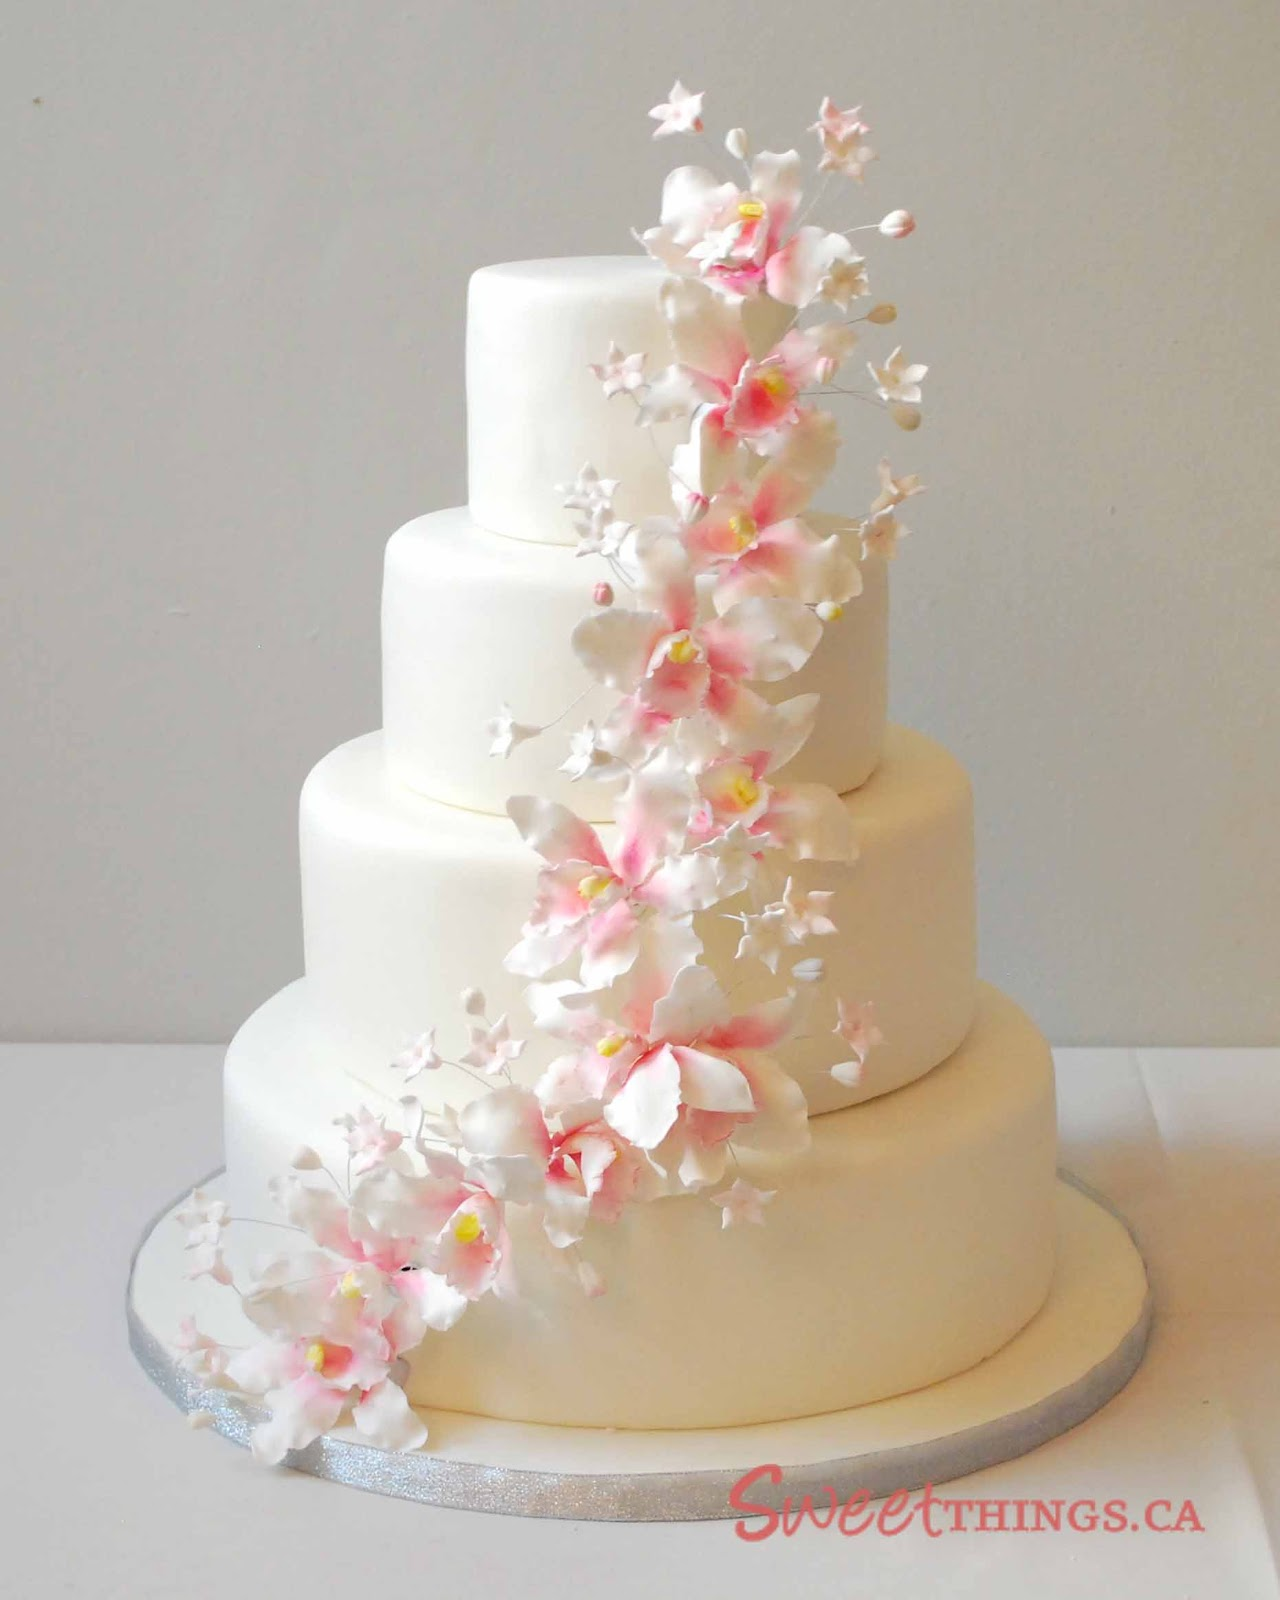 1664 Best Images About Wedding Cake Ideas On Pinterest: MILKY PINKY WAY: BEST WEDDING CAKE